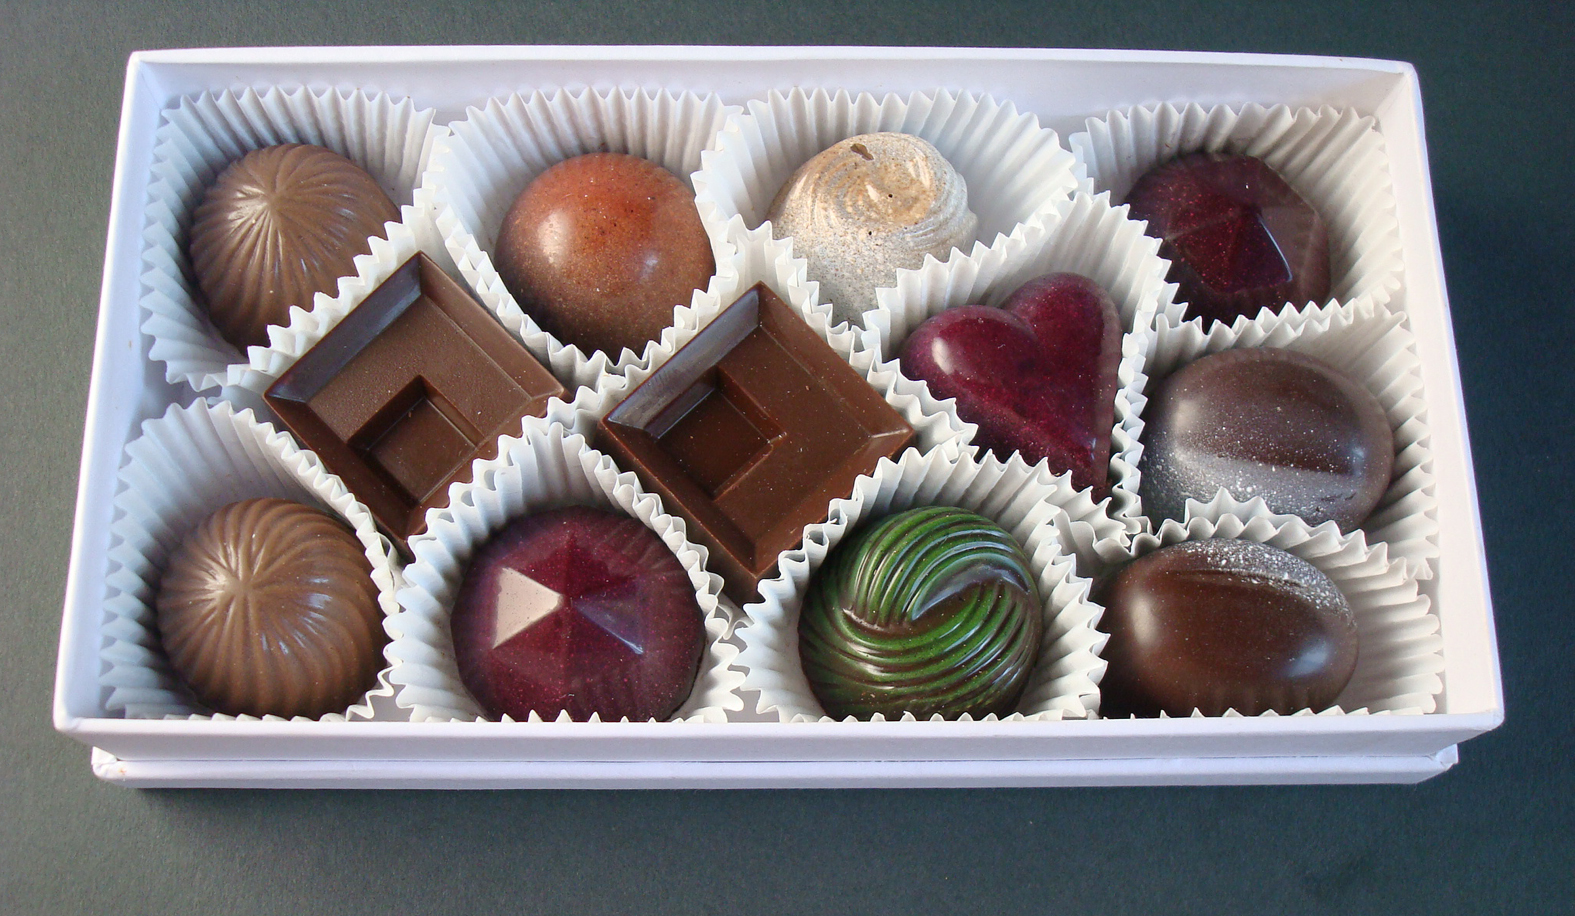 Bright, bold, and beautiful chocolates from Chocolatier Blue.